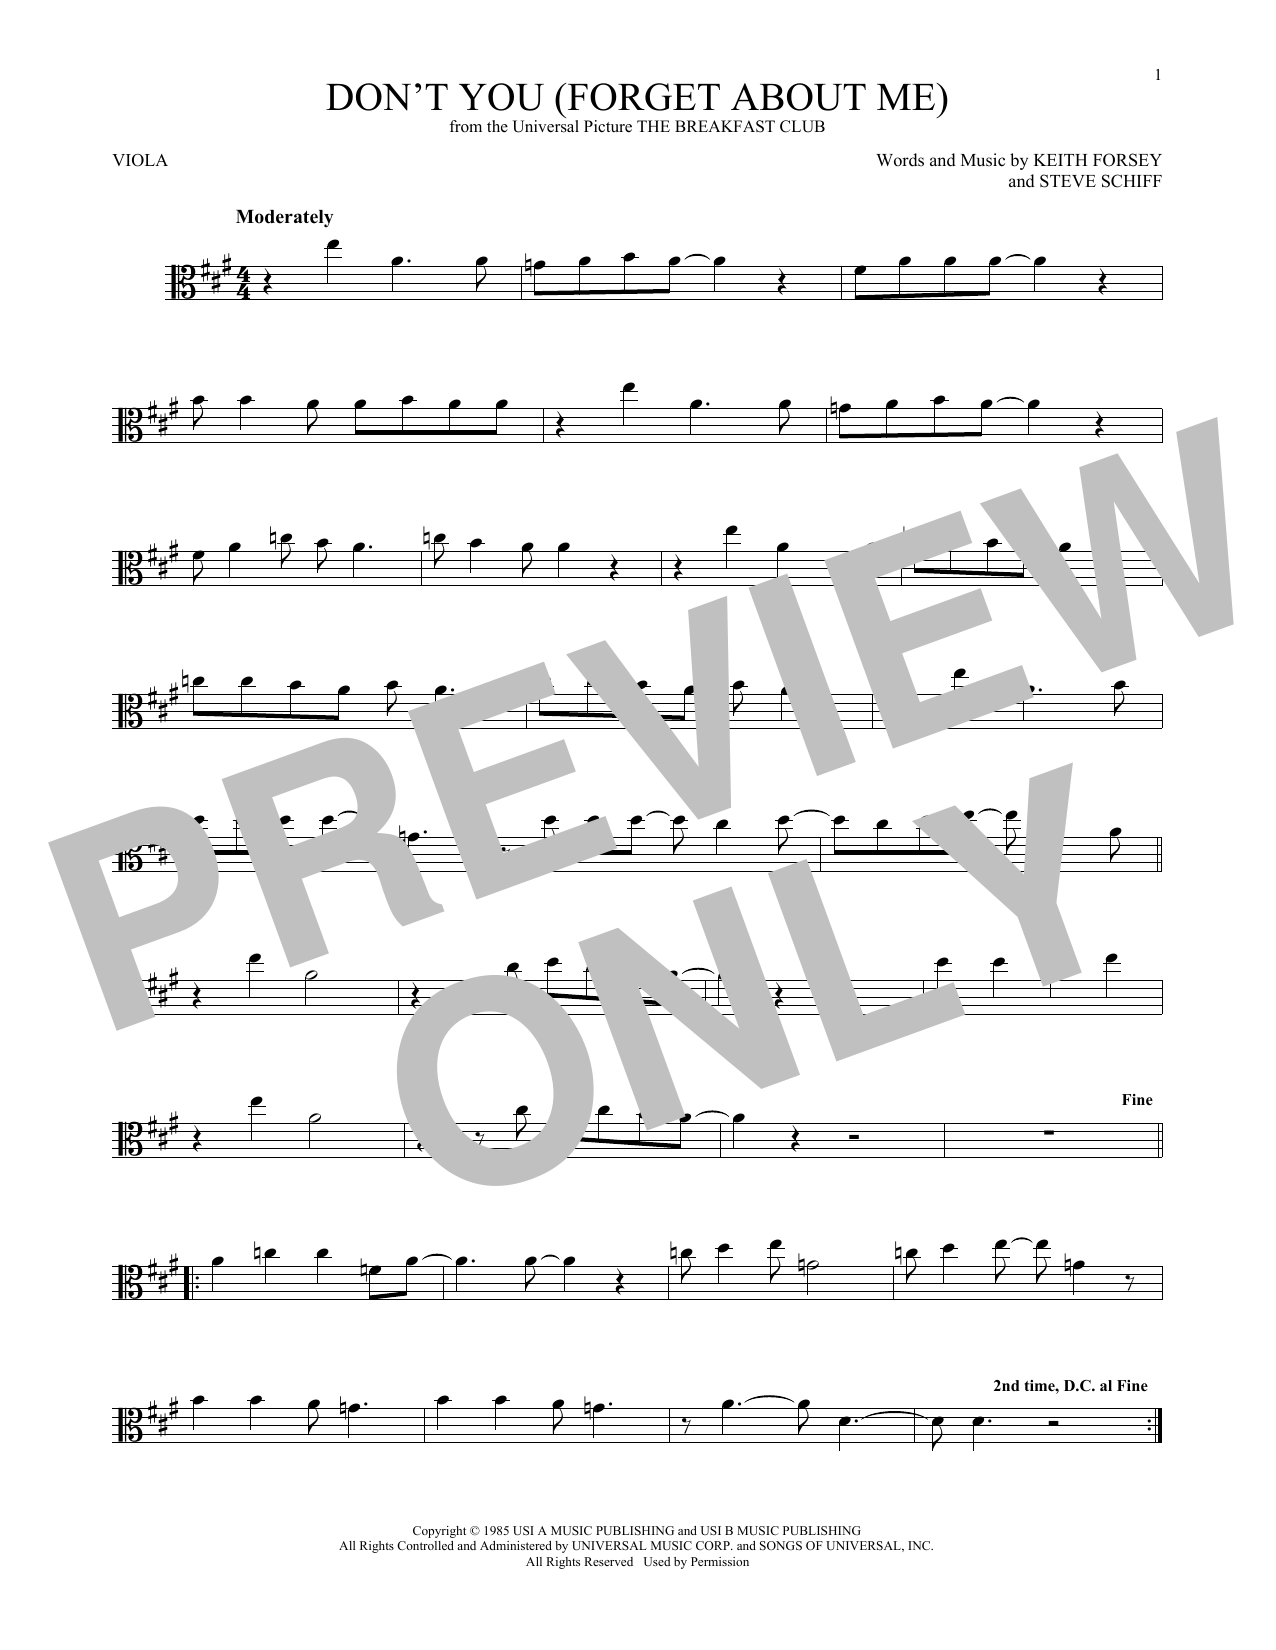 Don't You (Forget About Me) (Viola Solo)